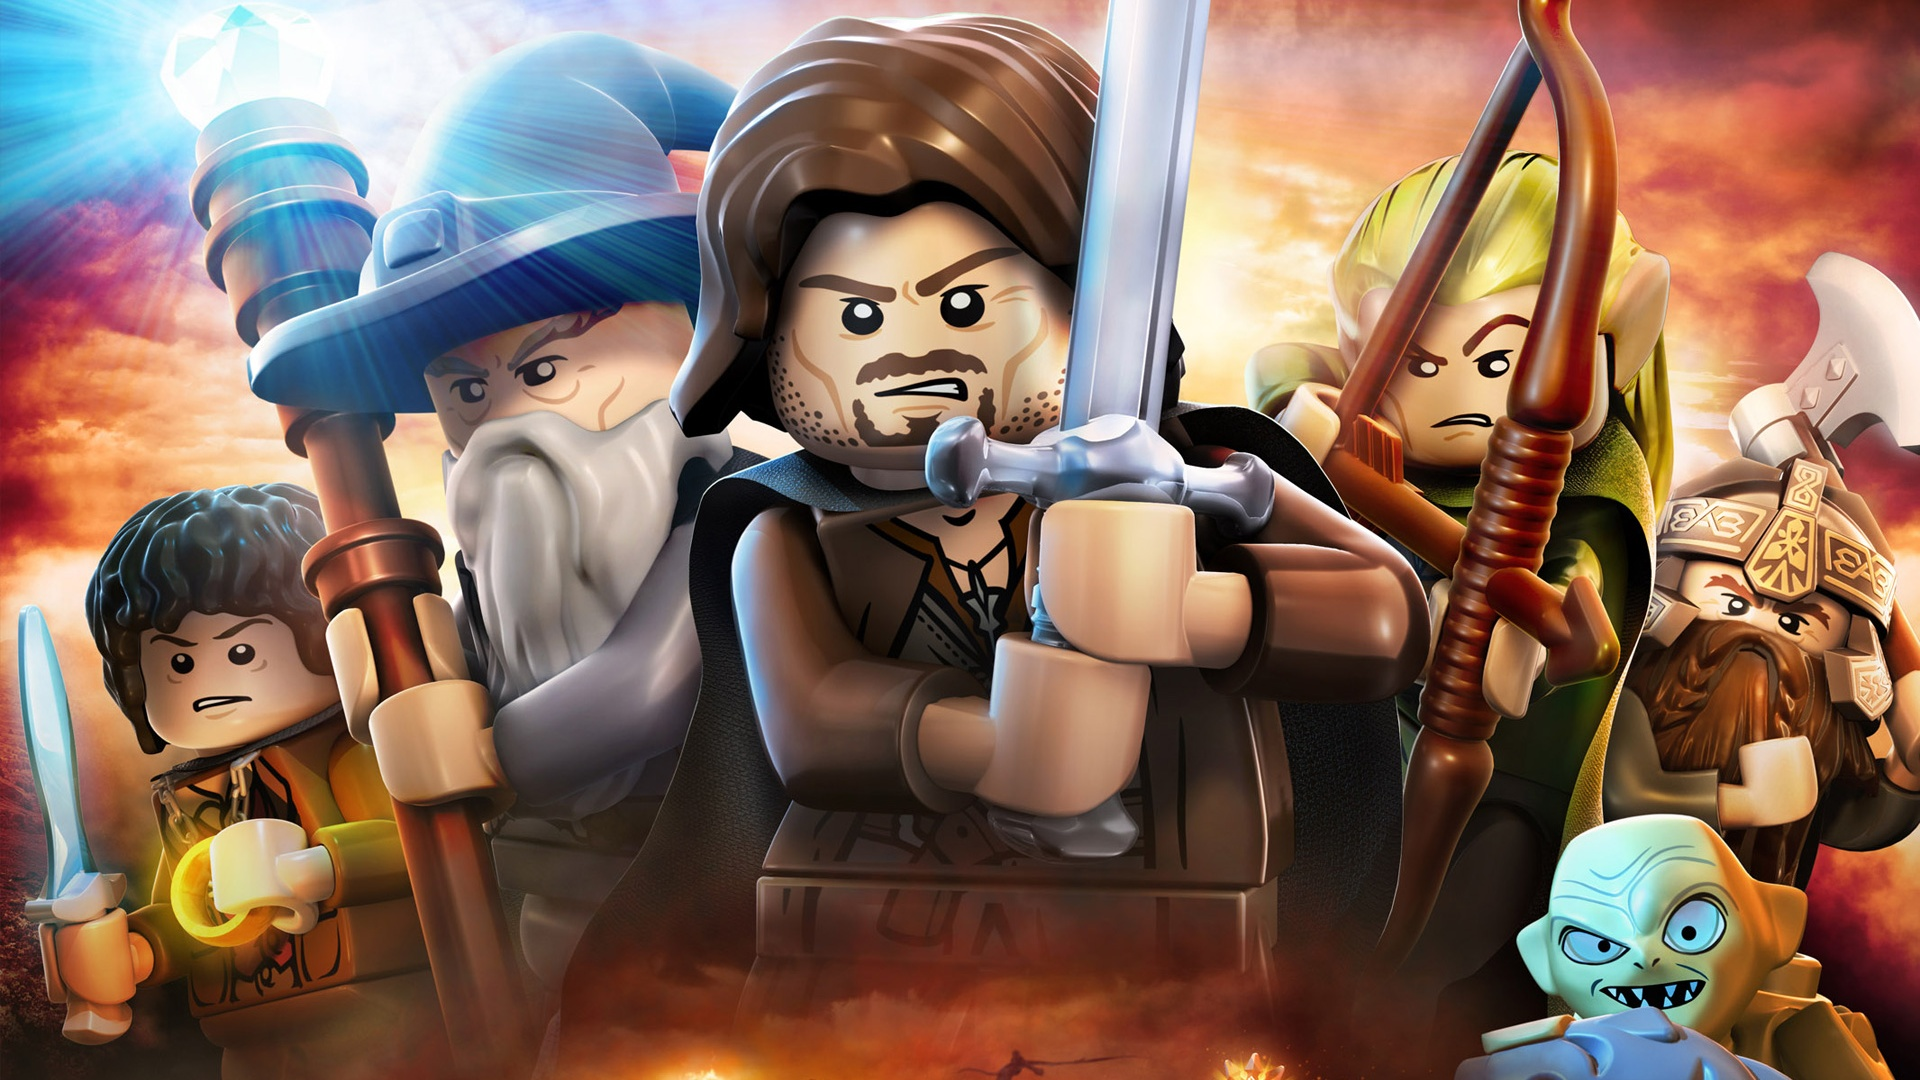 download wallpaper: Lego Lord of the Rings wallpaper